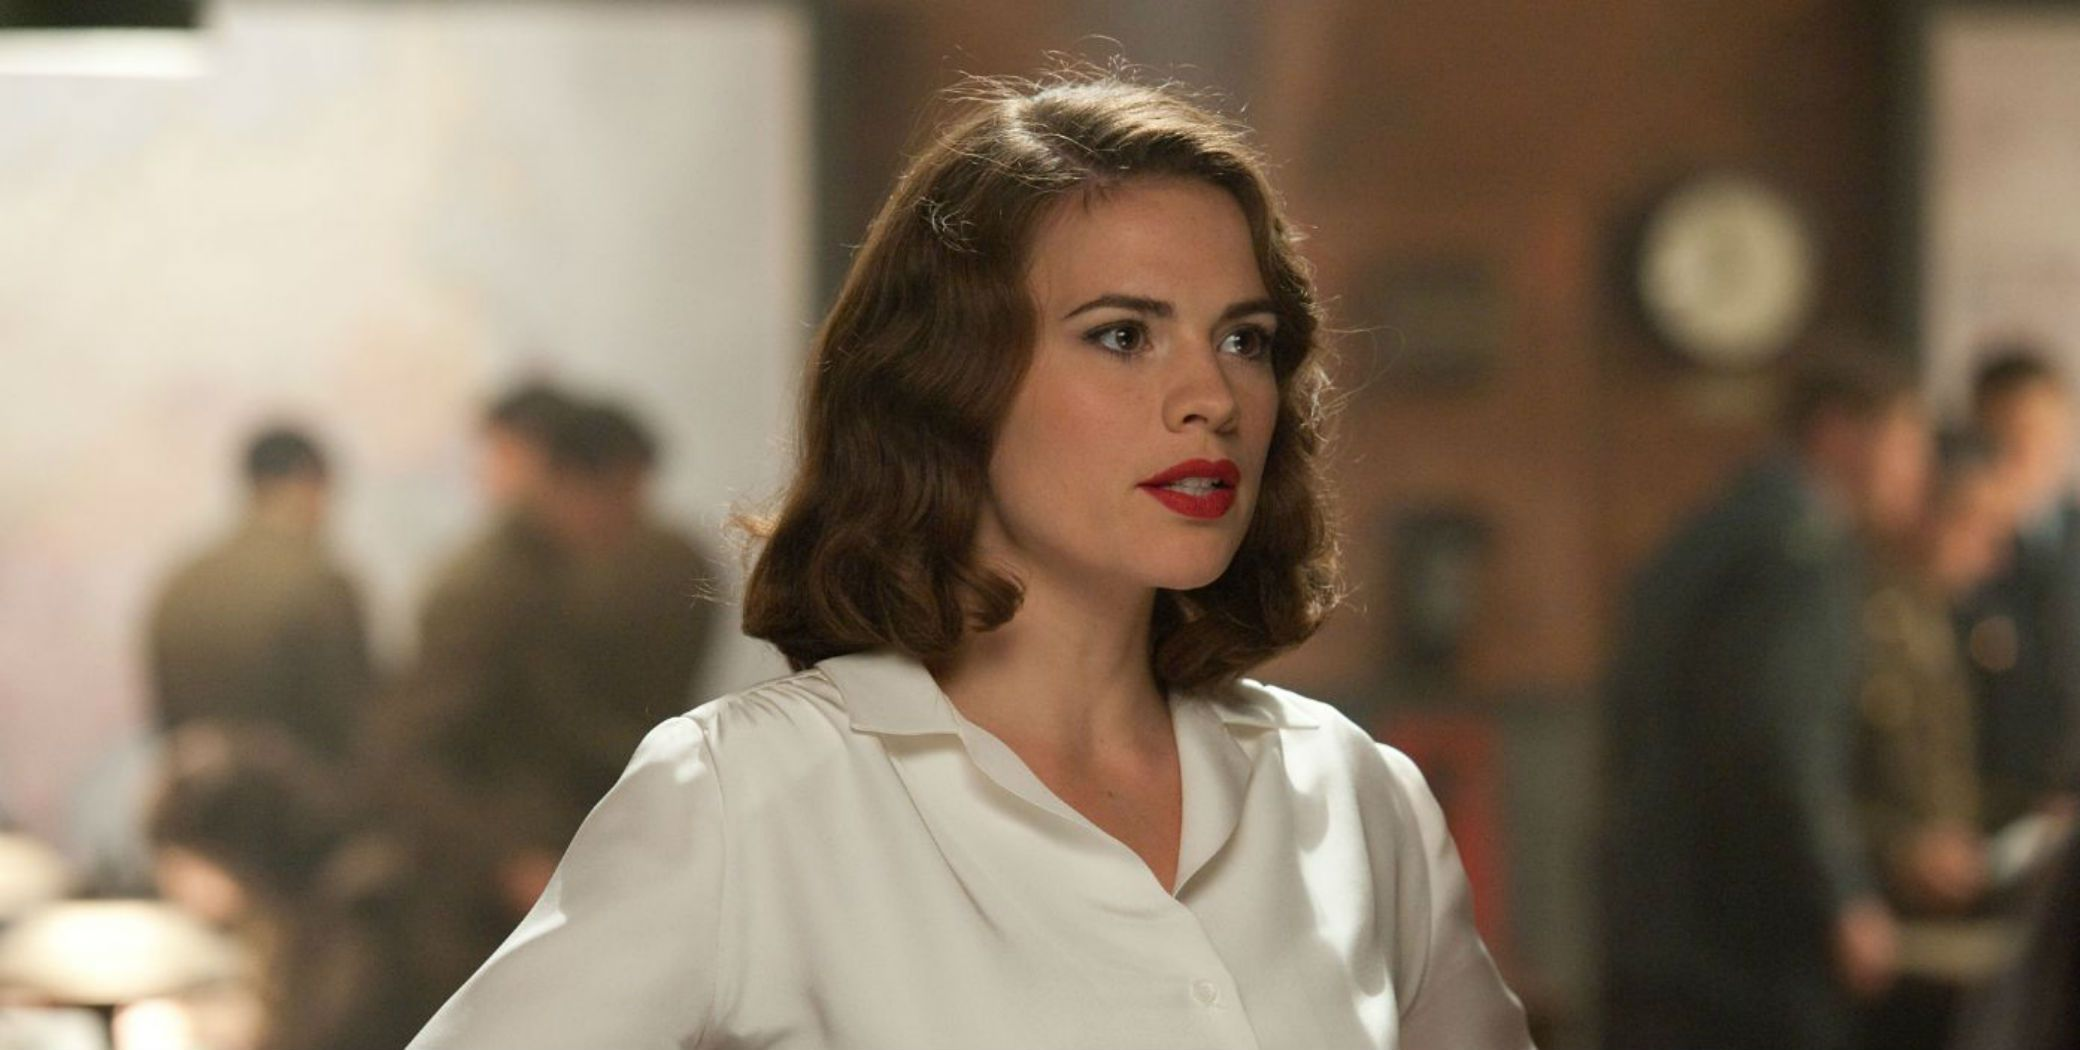 Agent Carter's Hayley Atwell will be in Mission: Impossible more than we thought